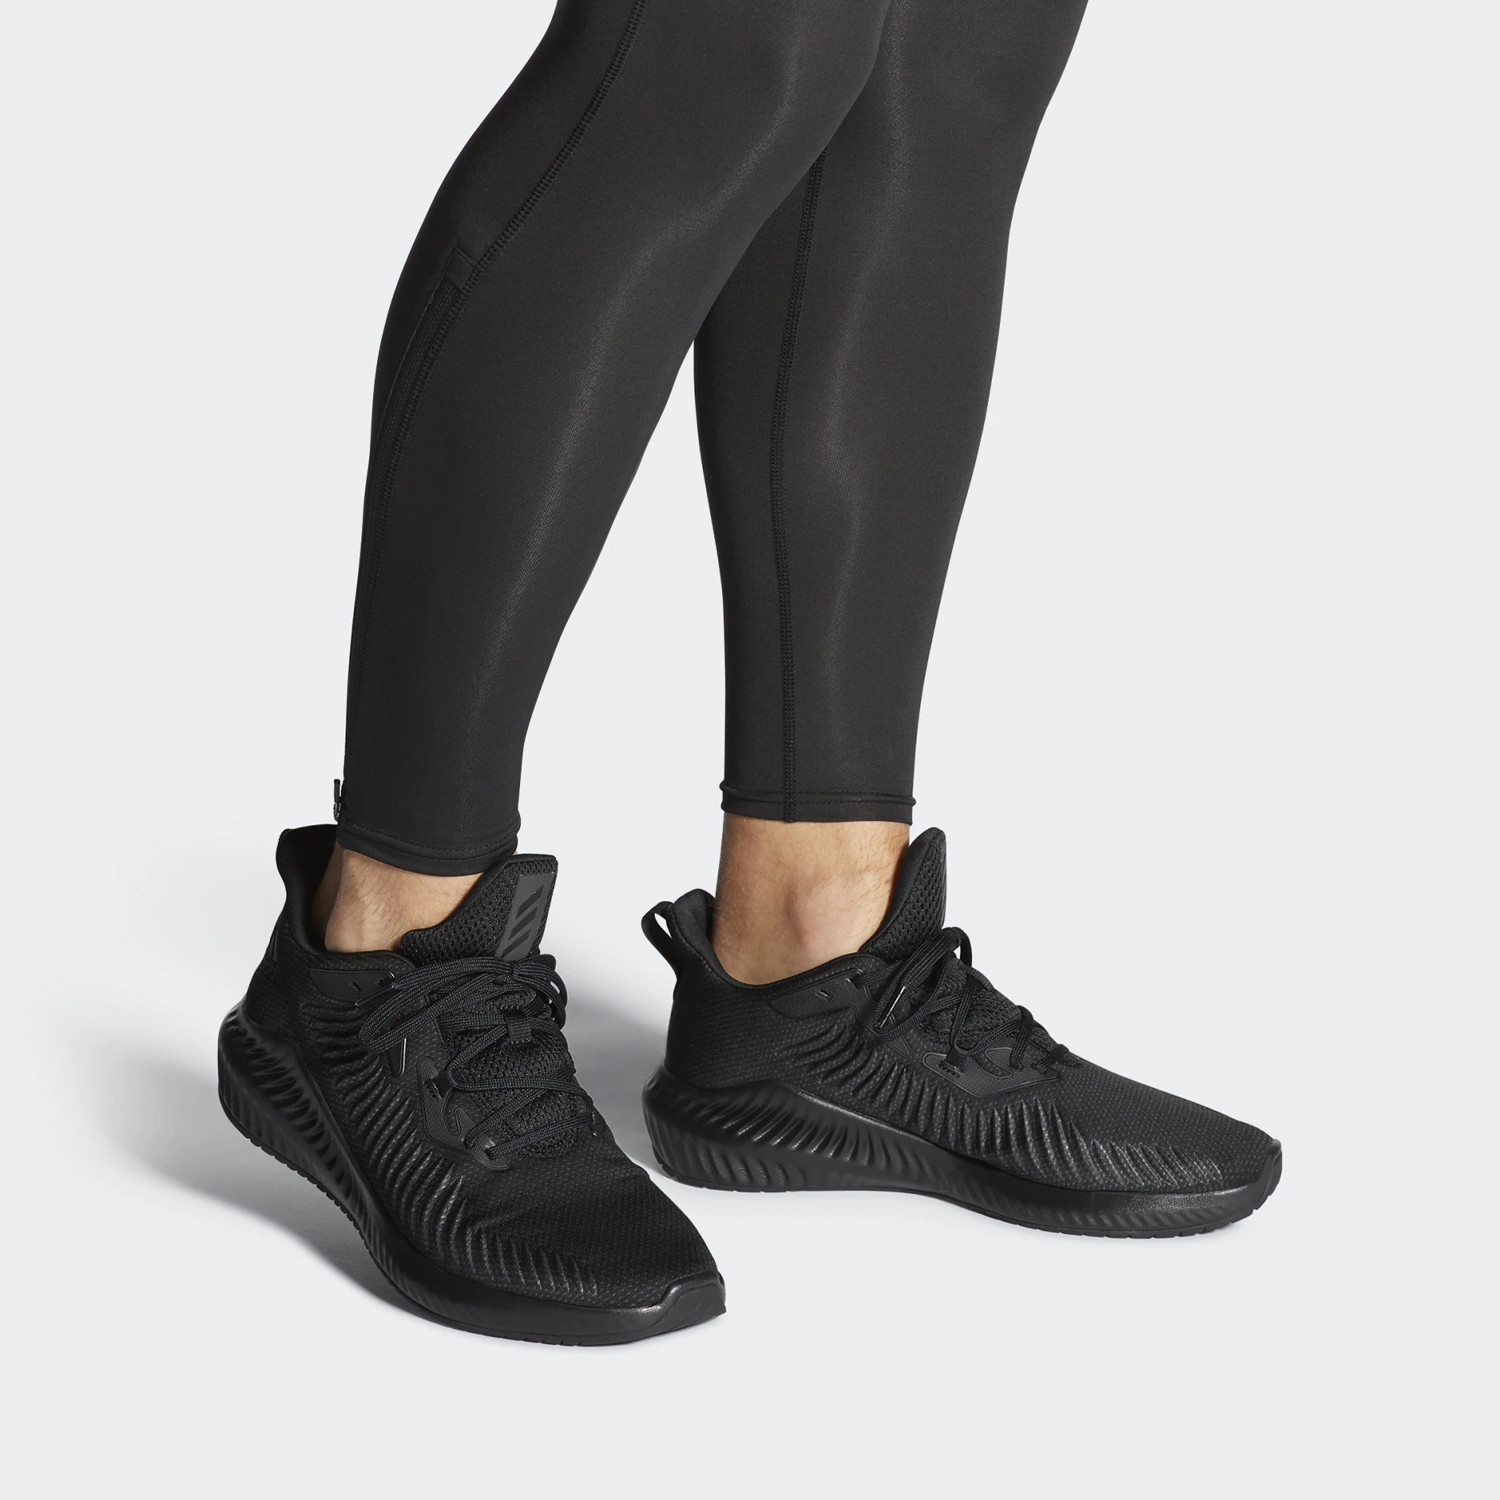 adidas Alphabounce+ Men's Shoes (9000044805_8343)